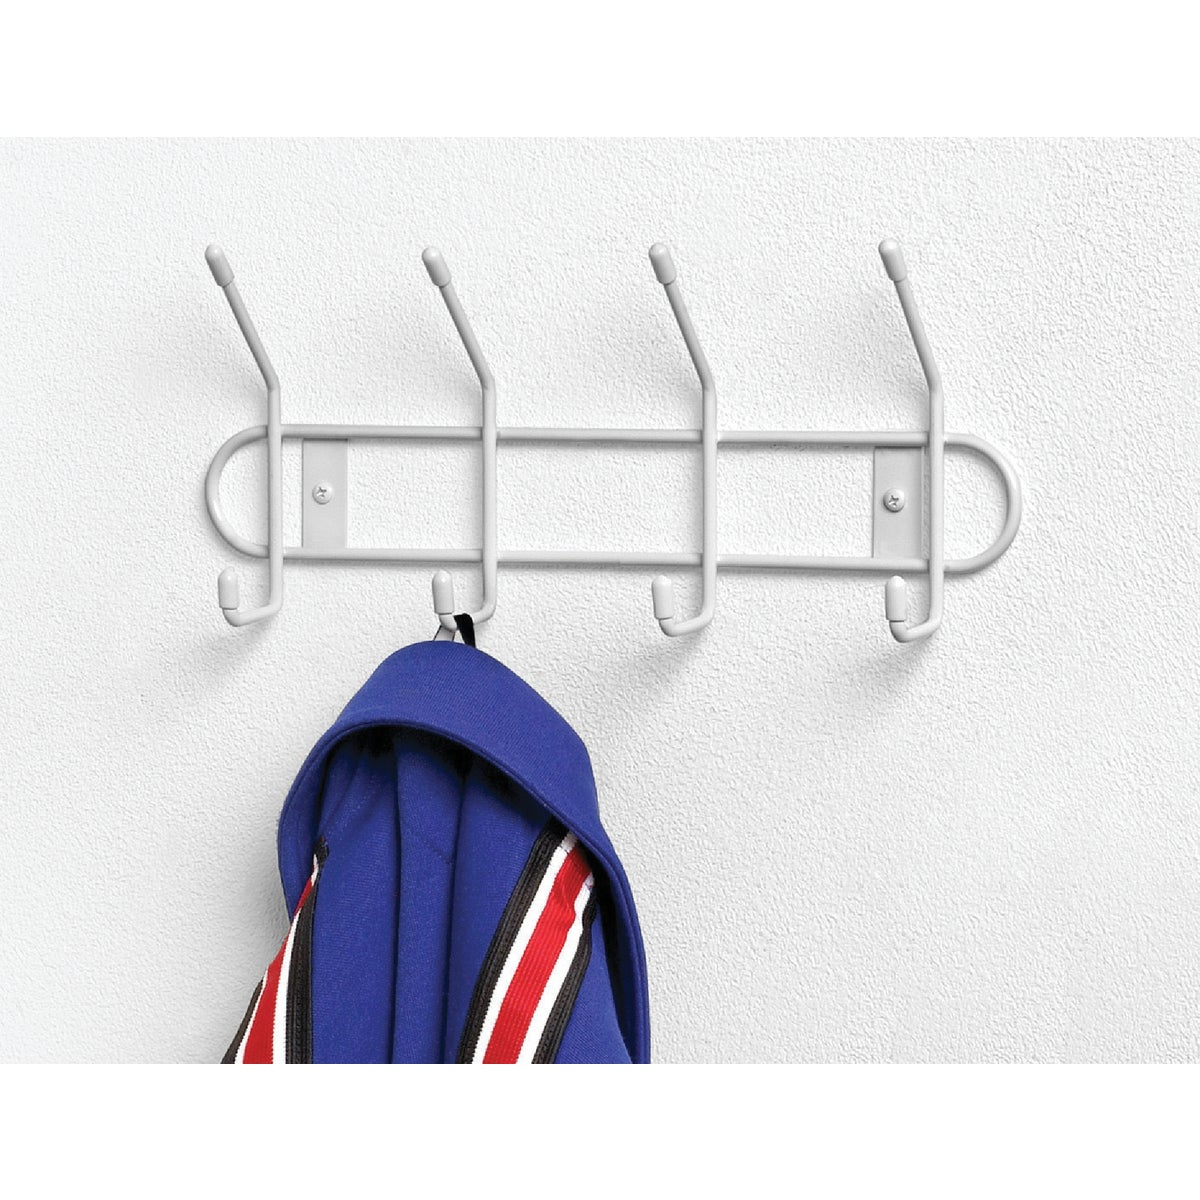 WHITE 4 HOOK RACK - 60400 by Spectrum Diversified